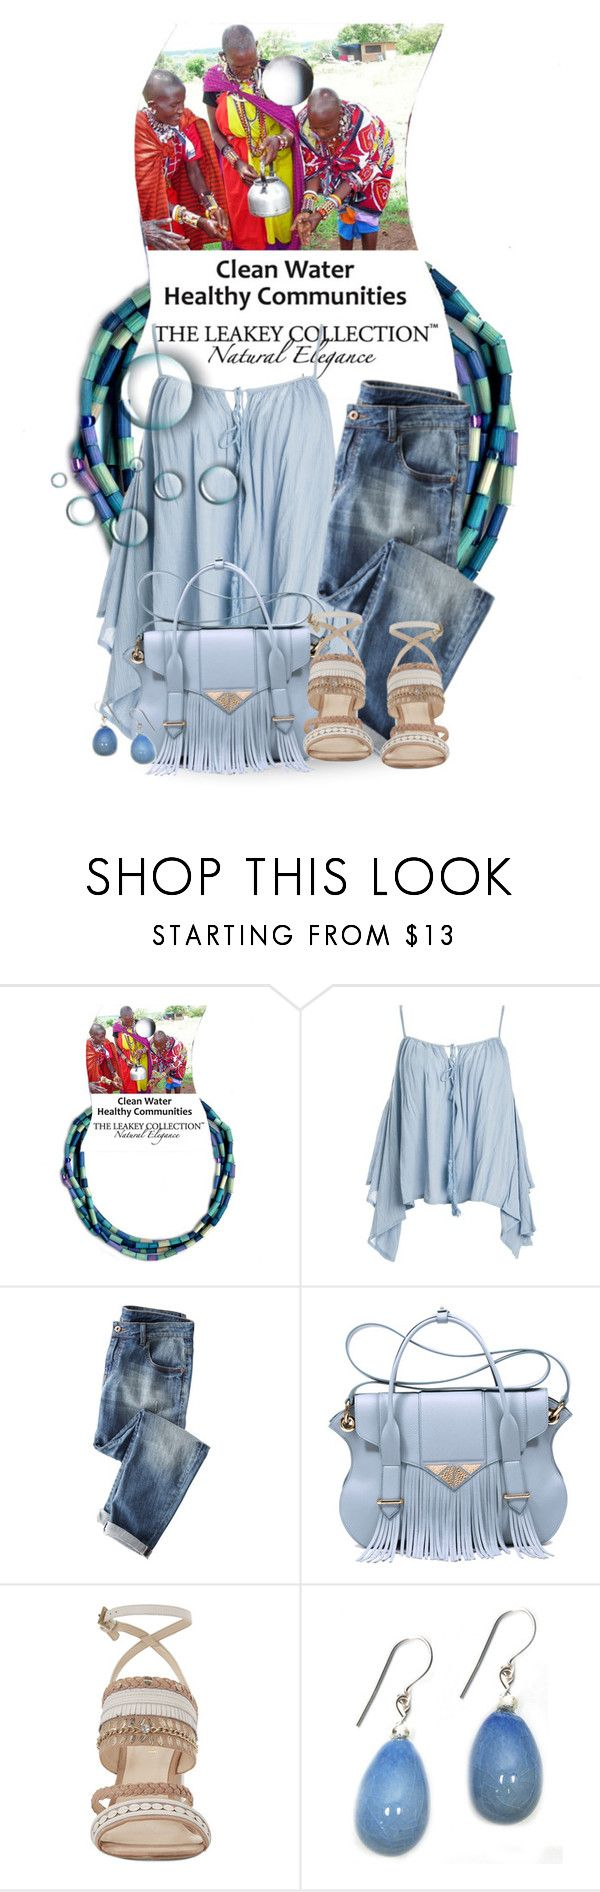 """""""World Health Day...Beads for Clean Water"""" by theleakeycollection ❤ liked on Polyvore featuring Sans Souci, Ella Rabener and Nine West"""